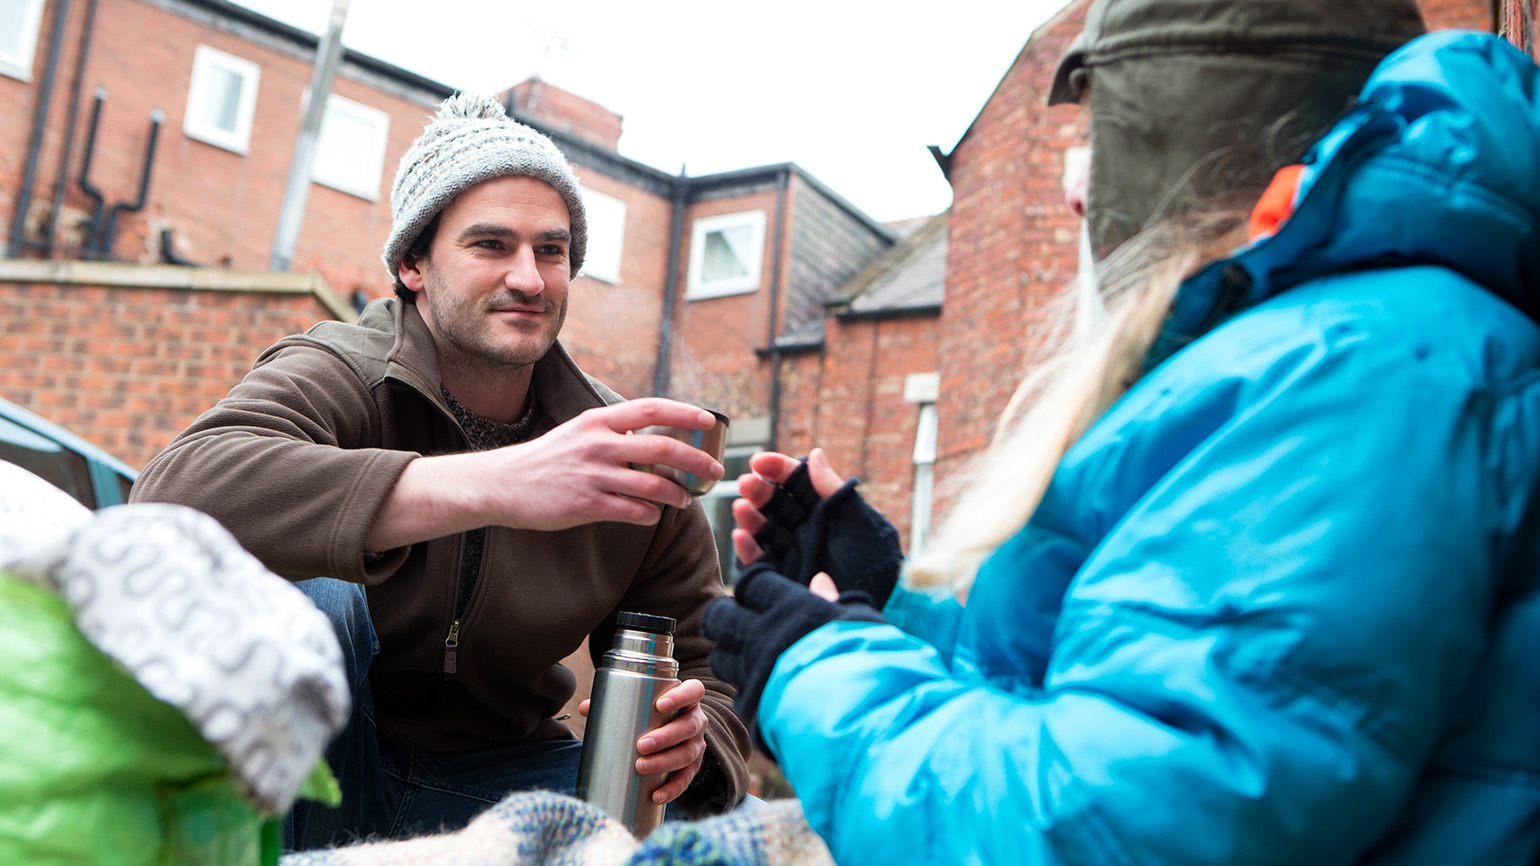 A man gives food to a homeless person